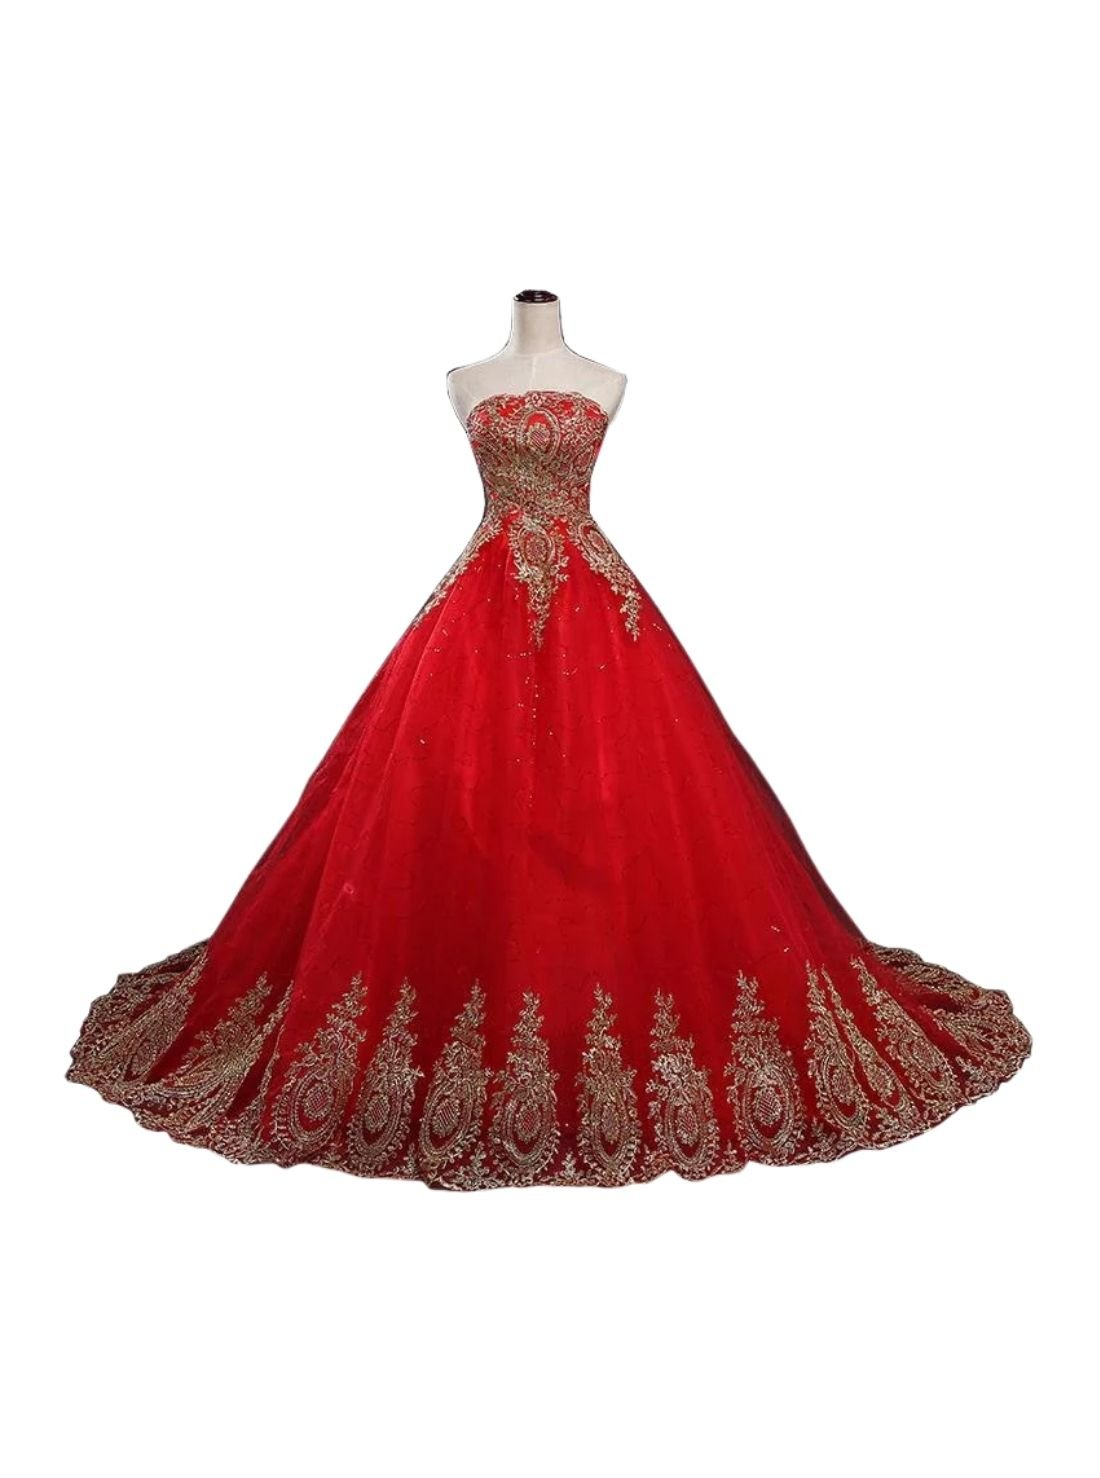 Tulle Red China Ball Gown Wedding Dress